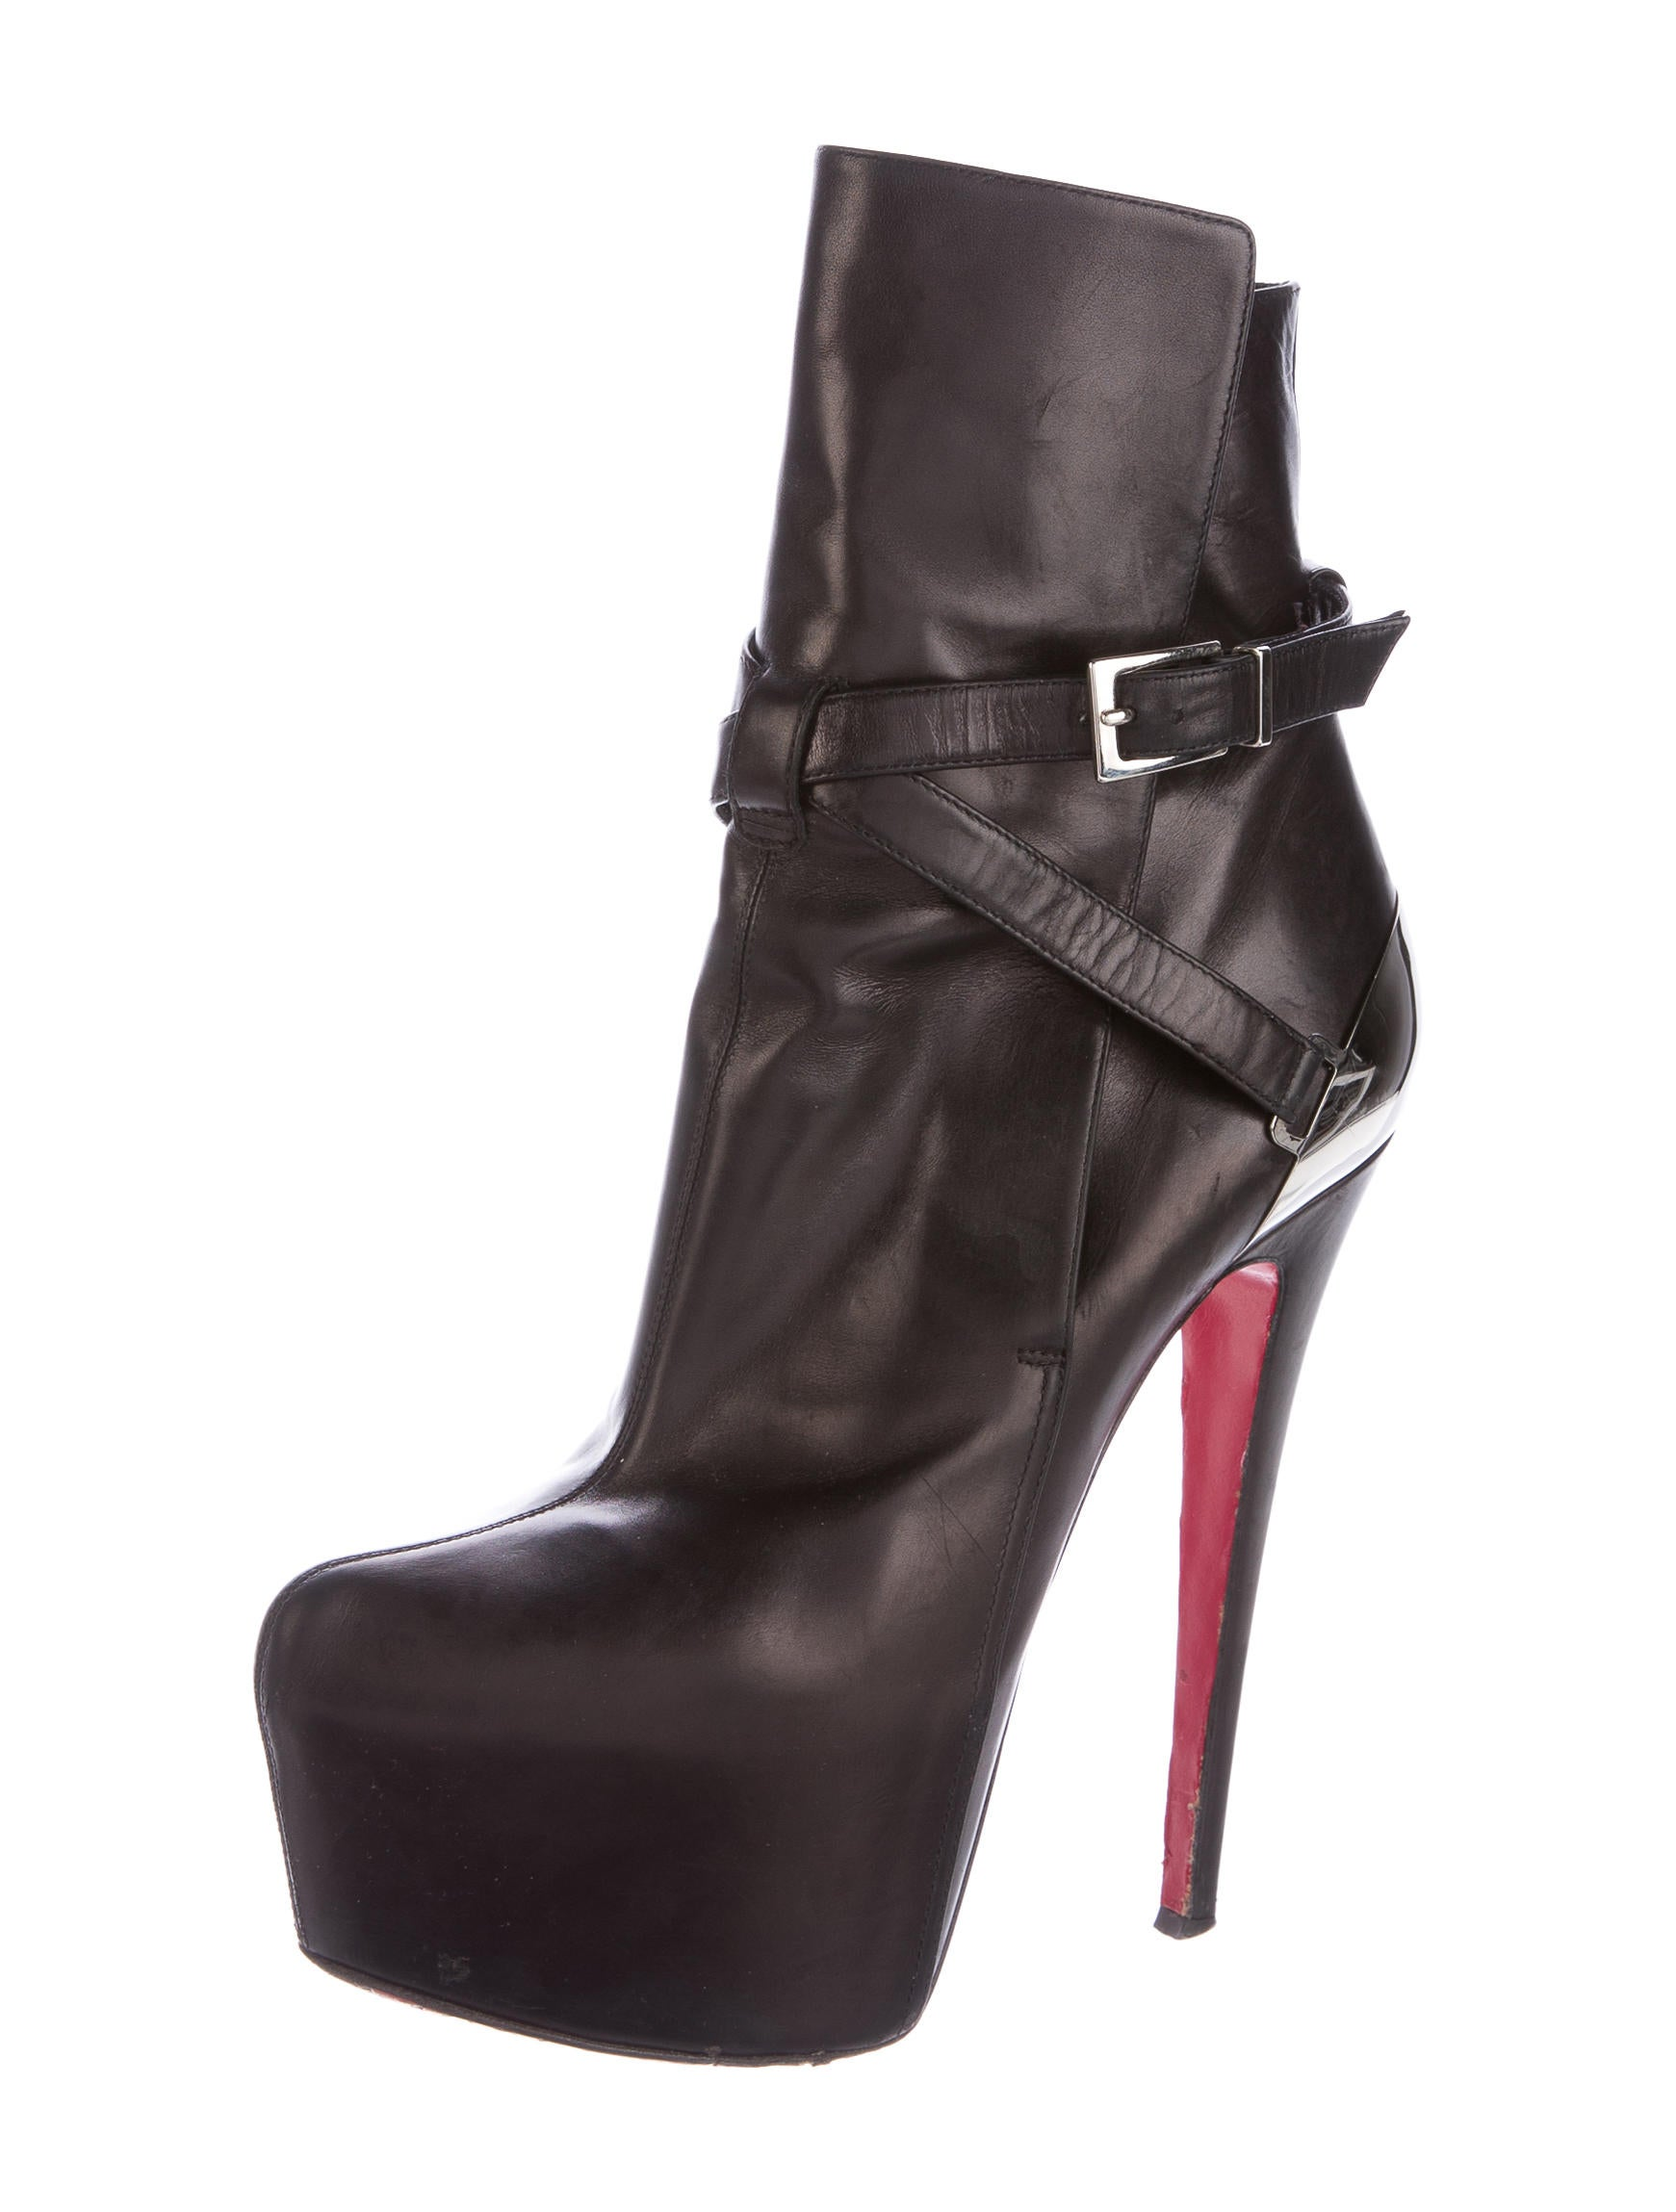 Find great deals on eBay for ankle boots platform. Shop with confidence.